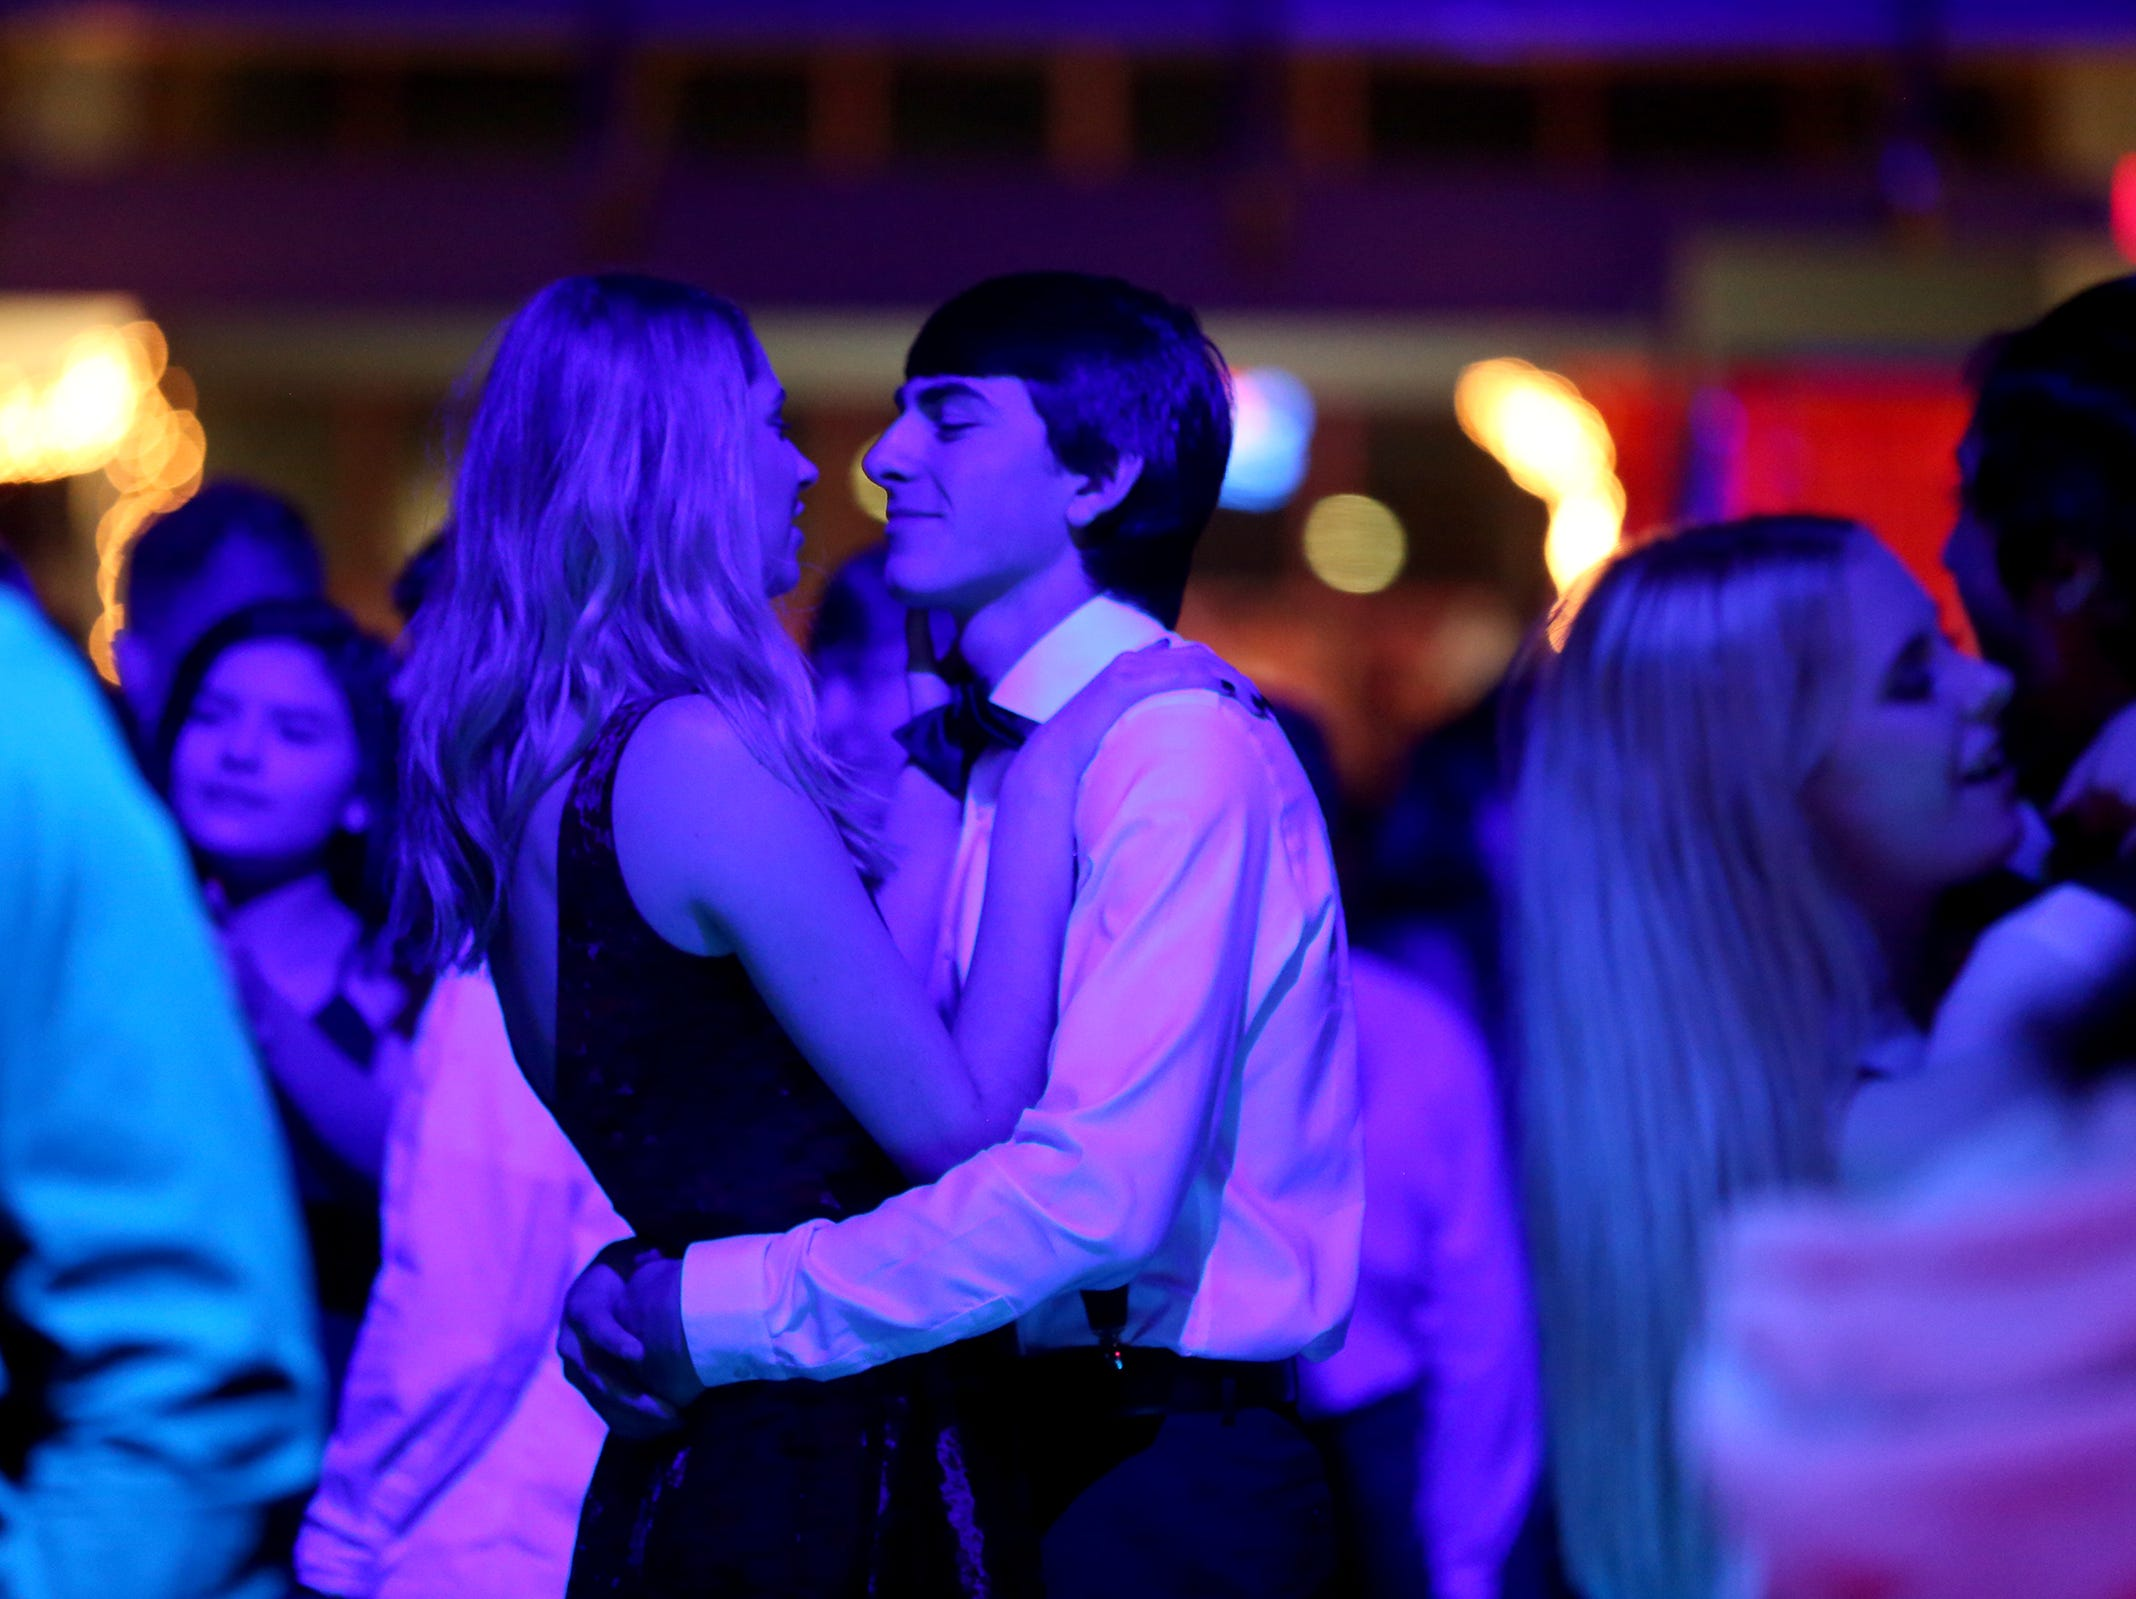 Two students dance during the annual SnoBall at the Oregon State Fairgrounds Pavilion in Salem on Saturday, Dec. 1, 2018.